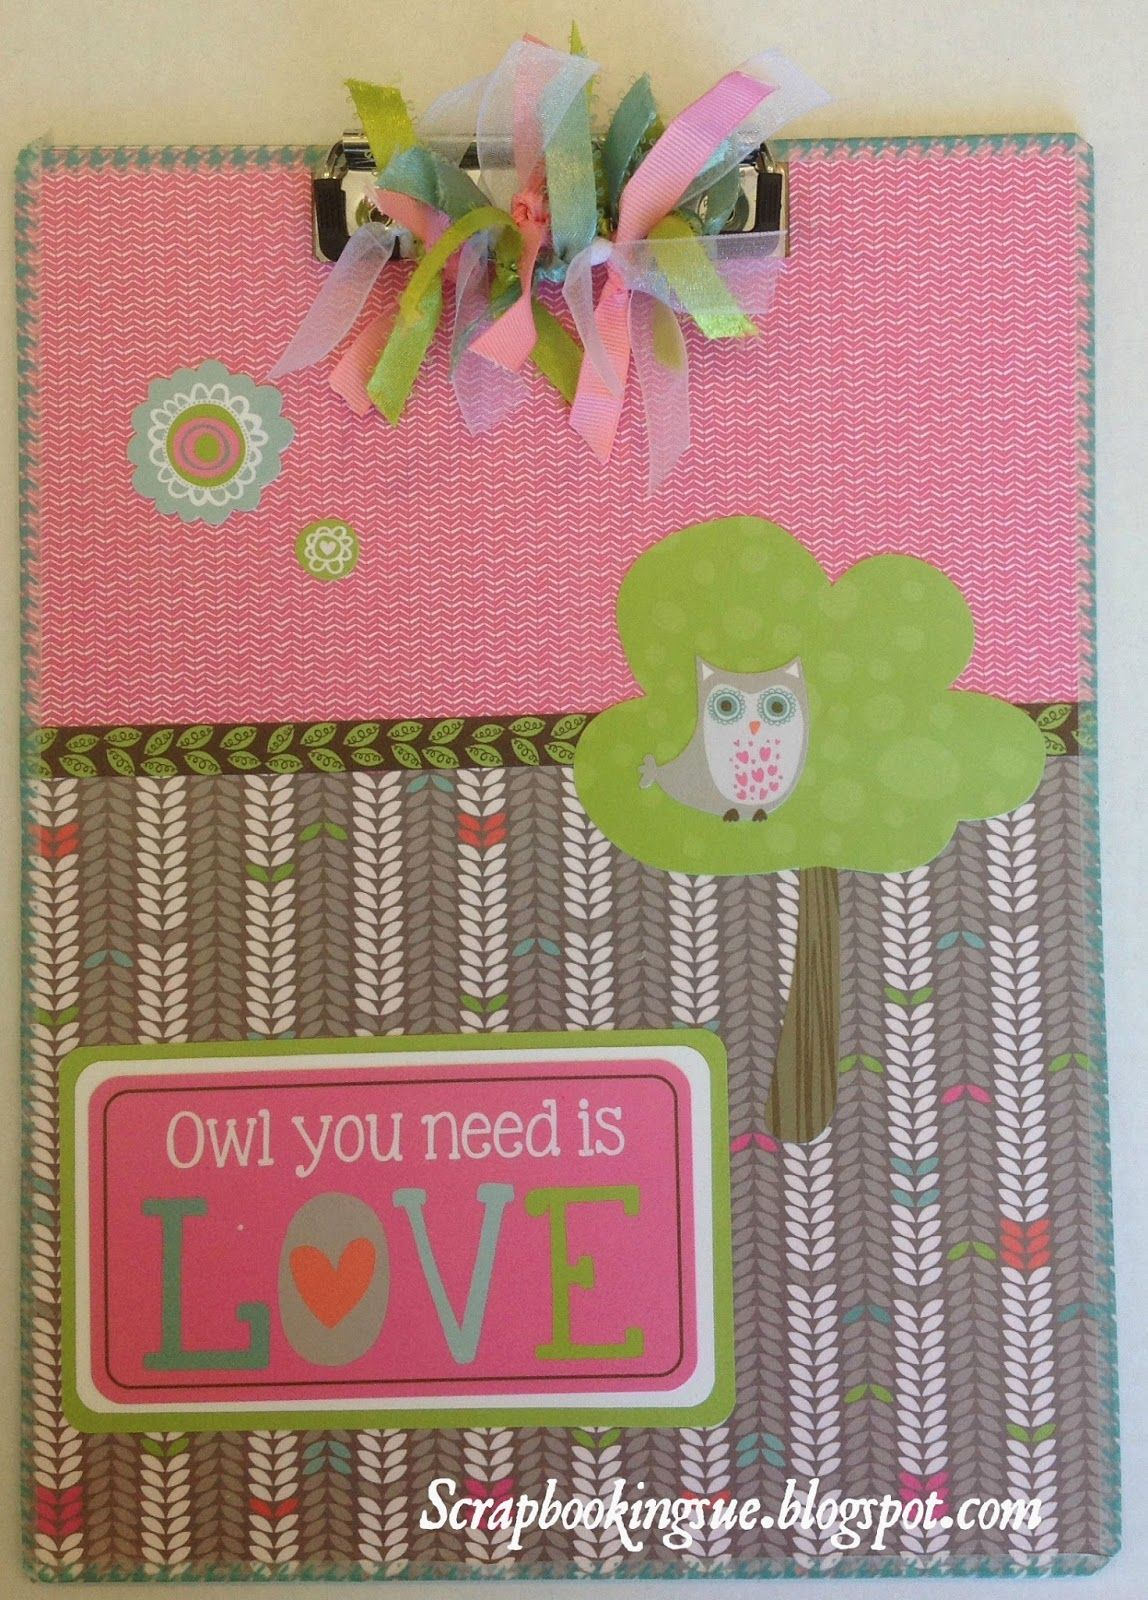 Scrapbooking Sue: Altered Clipboard made with Close To My Heart Lollydoodle papers. www.scrapbookingsue.blogspot.com